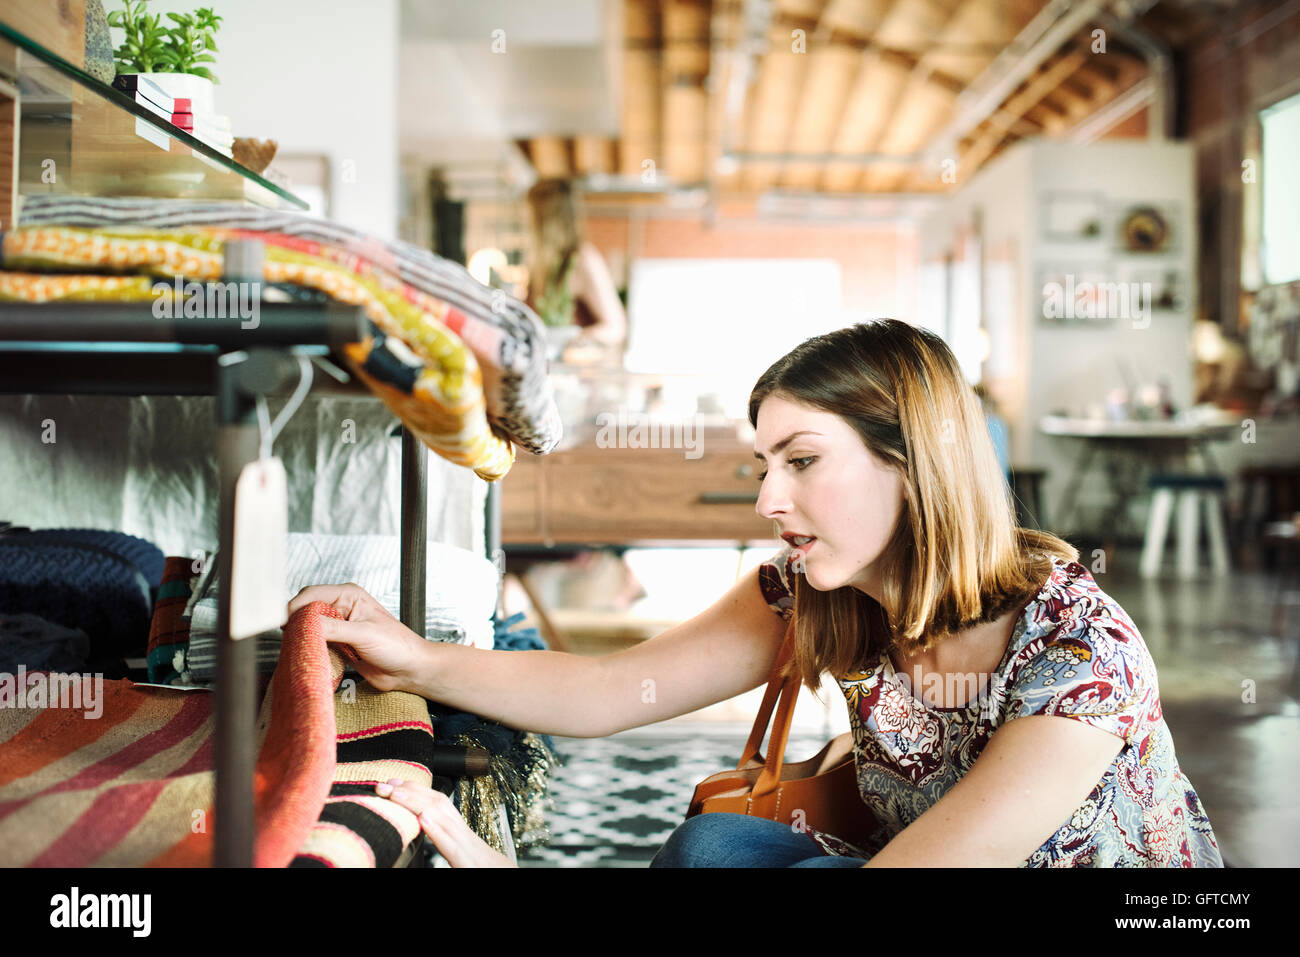 Young woman in a shop looking at rugs on a shelf - Stock Image